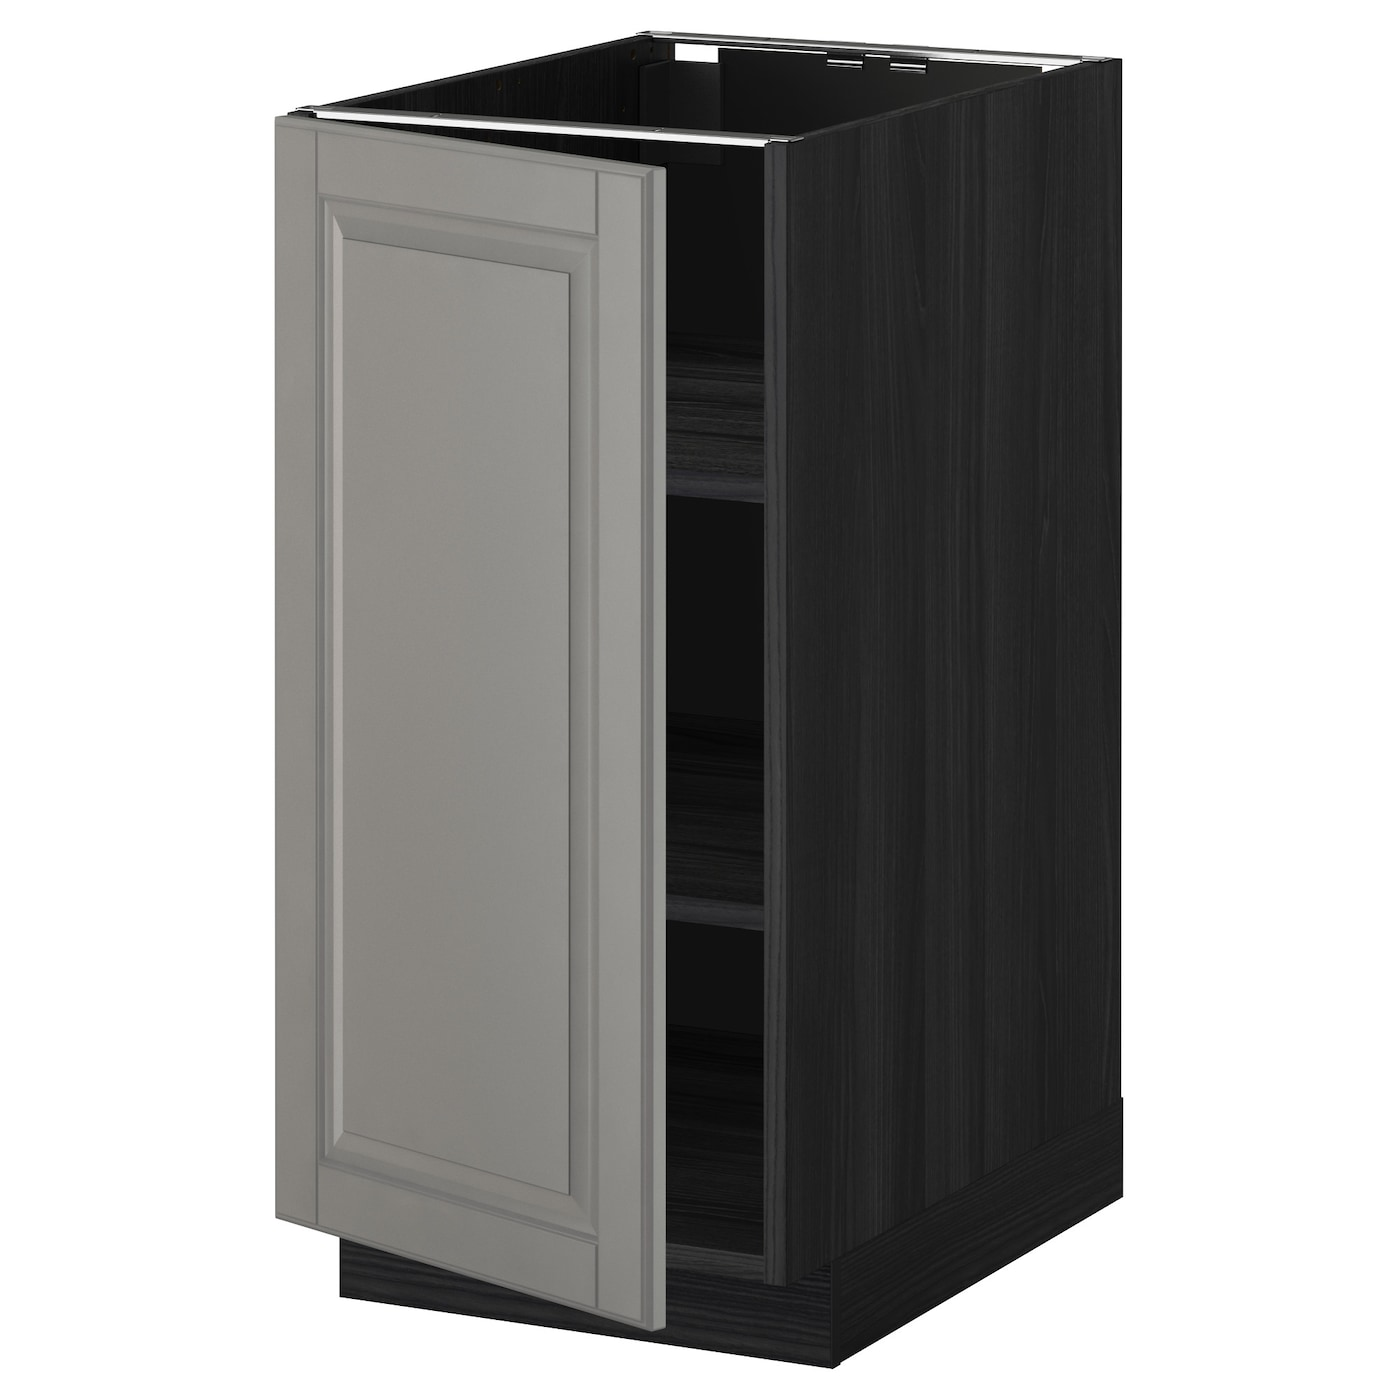 Metod base cabinet with shelves black bodbyn grey 40x60 cm for Ikea base cabinets